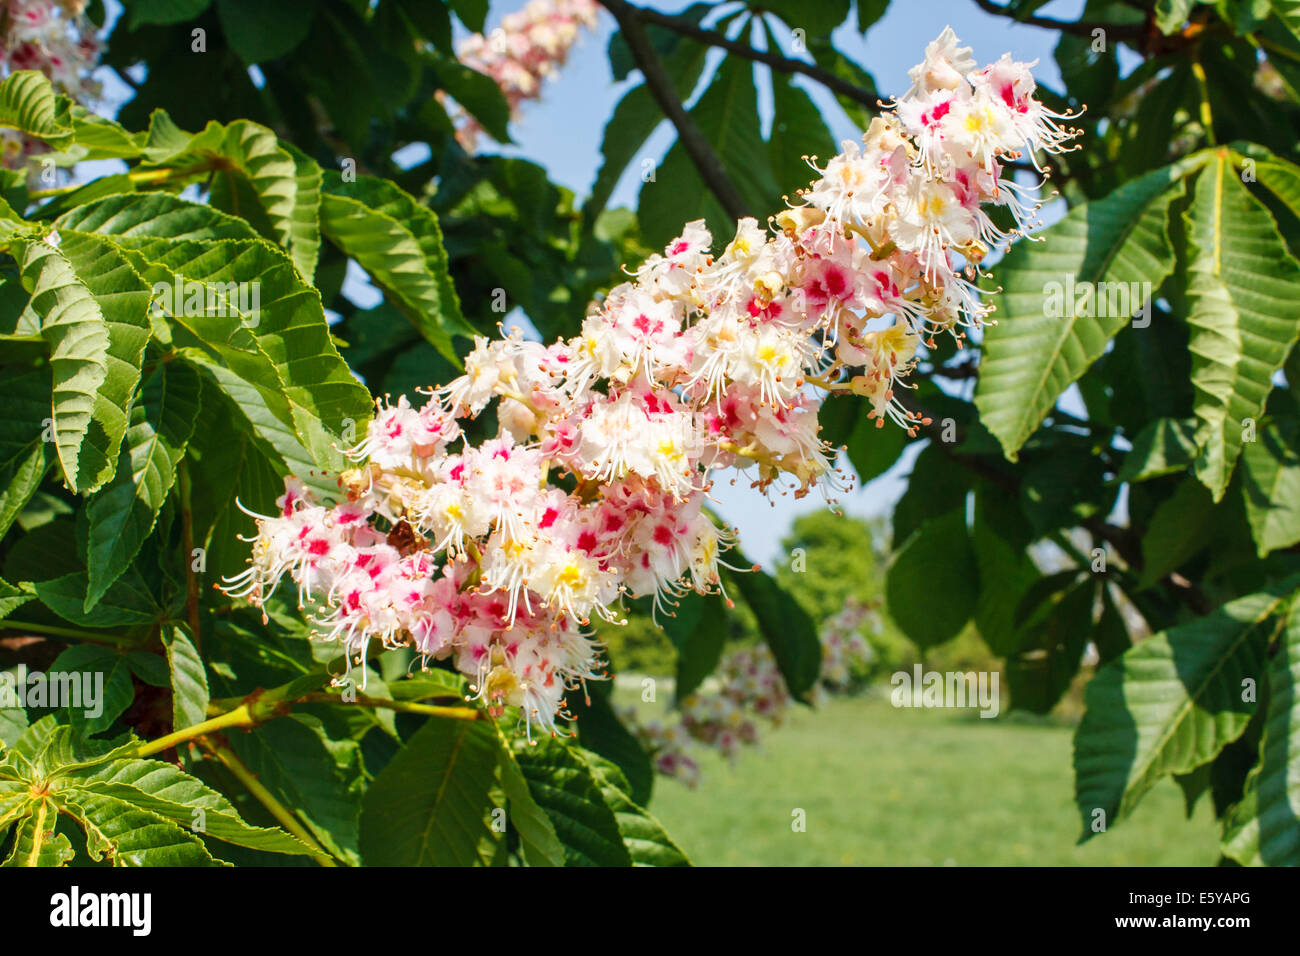 Horse-chestnut tree, Aesculus hippocastanum, with spring flowers in bloom Stock Photo